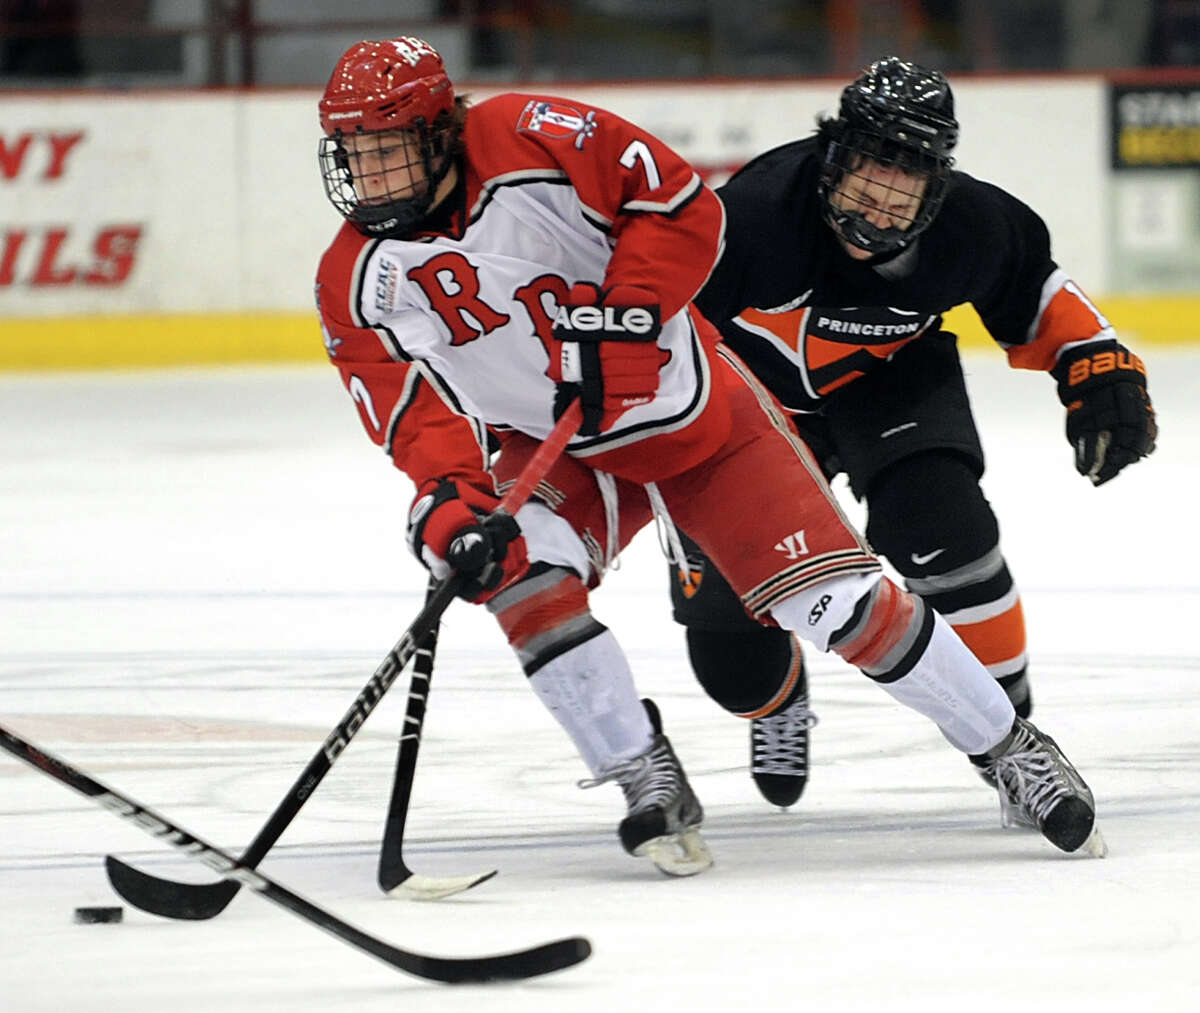 RPI's Zach Schroeder (7), left, controls the puck as Princeton's Aaron Kesselman (11) defends during their hockey game on Friday, Nov. 30, 2012, at Rensselaer Polytechnic Institute in Troy, N.Y. (Cindy Schultz / Times Union)